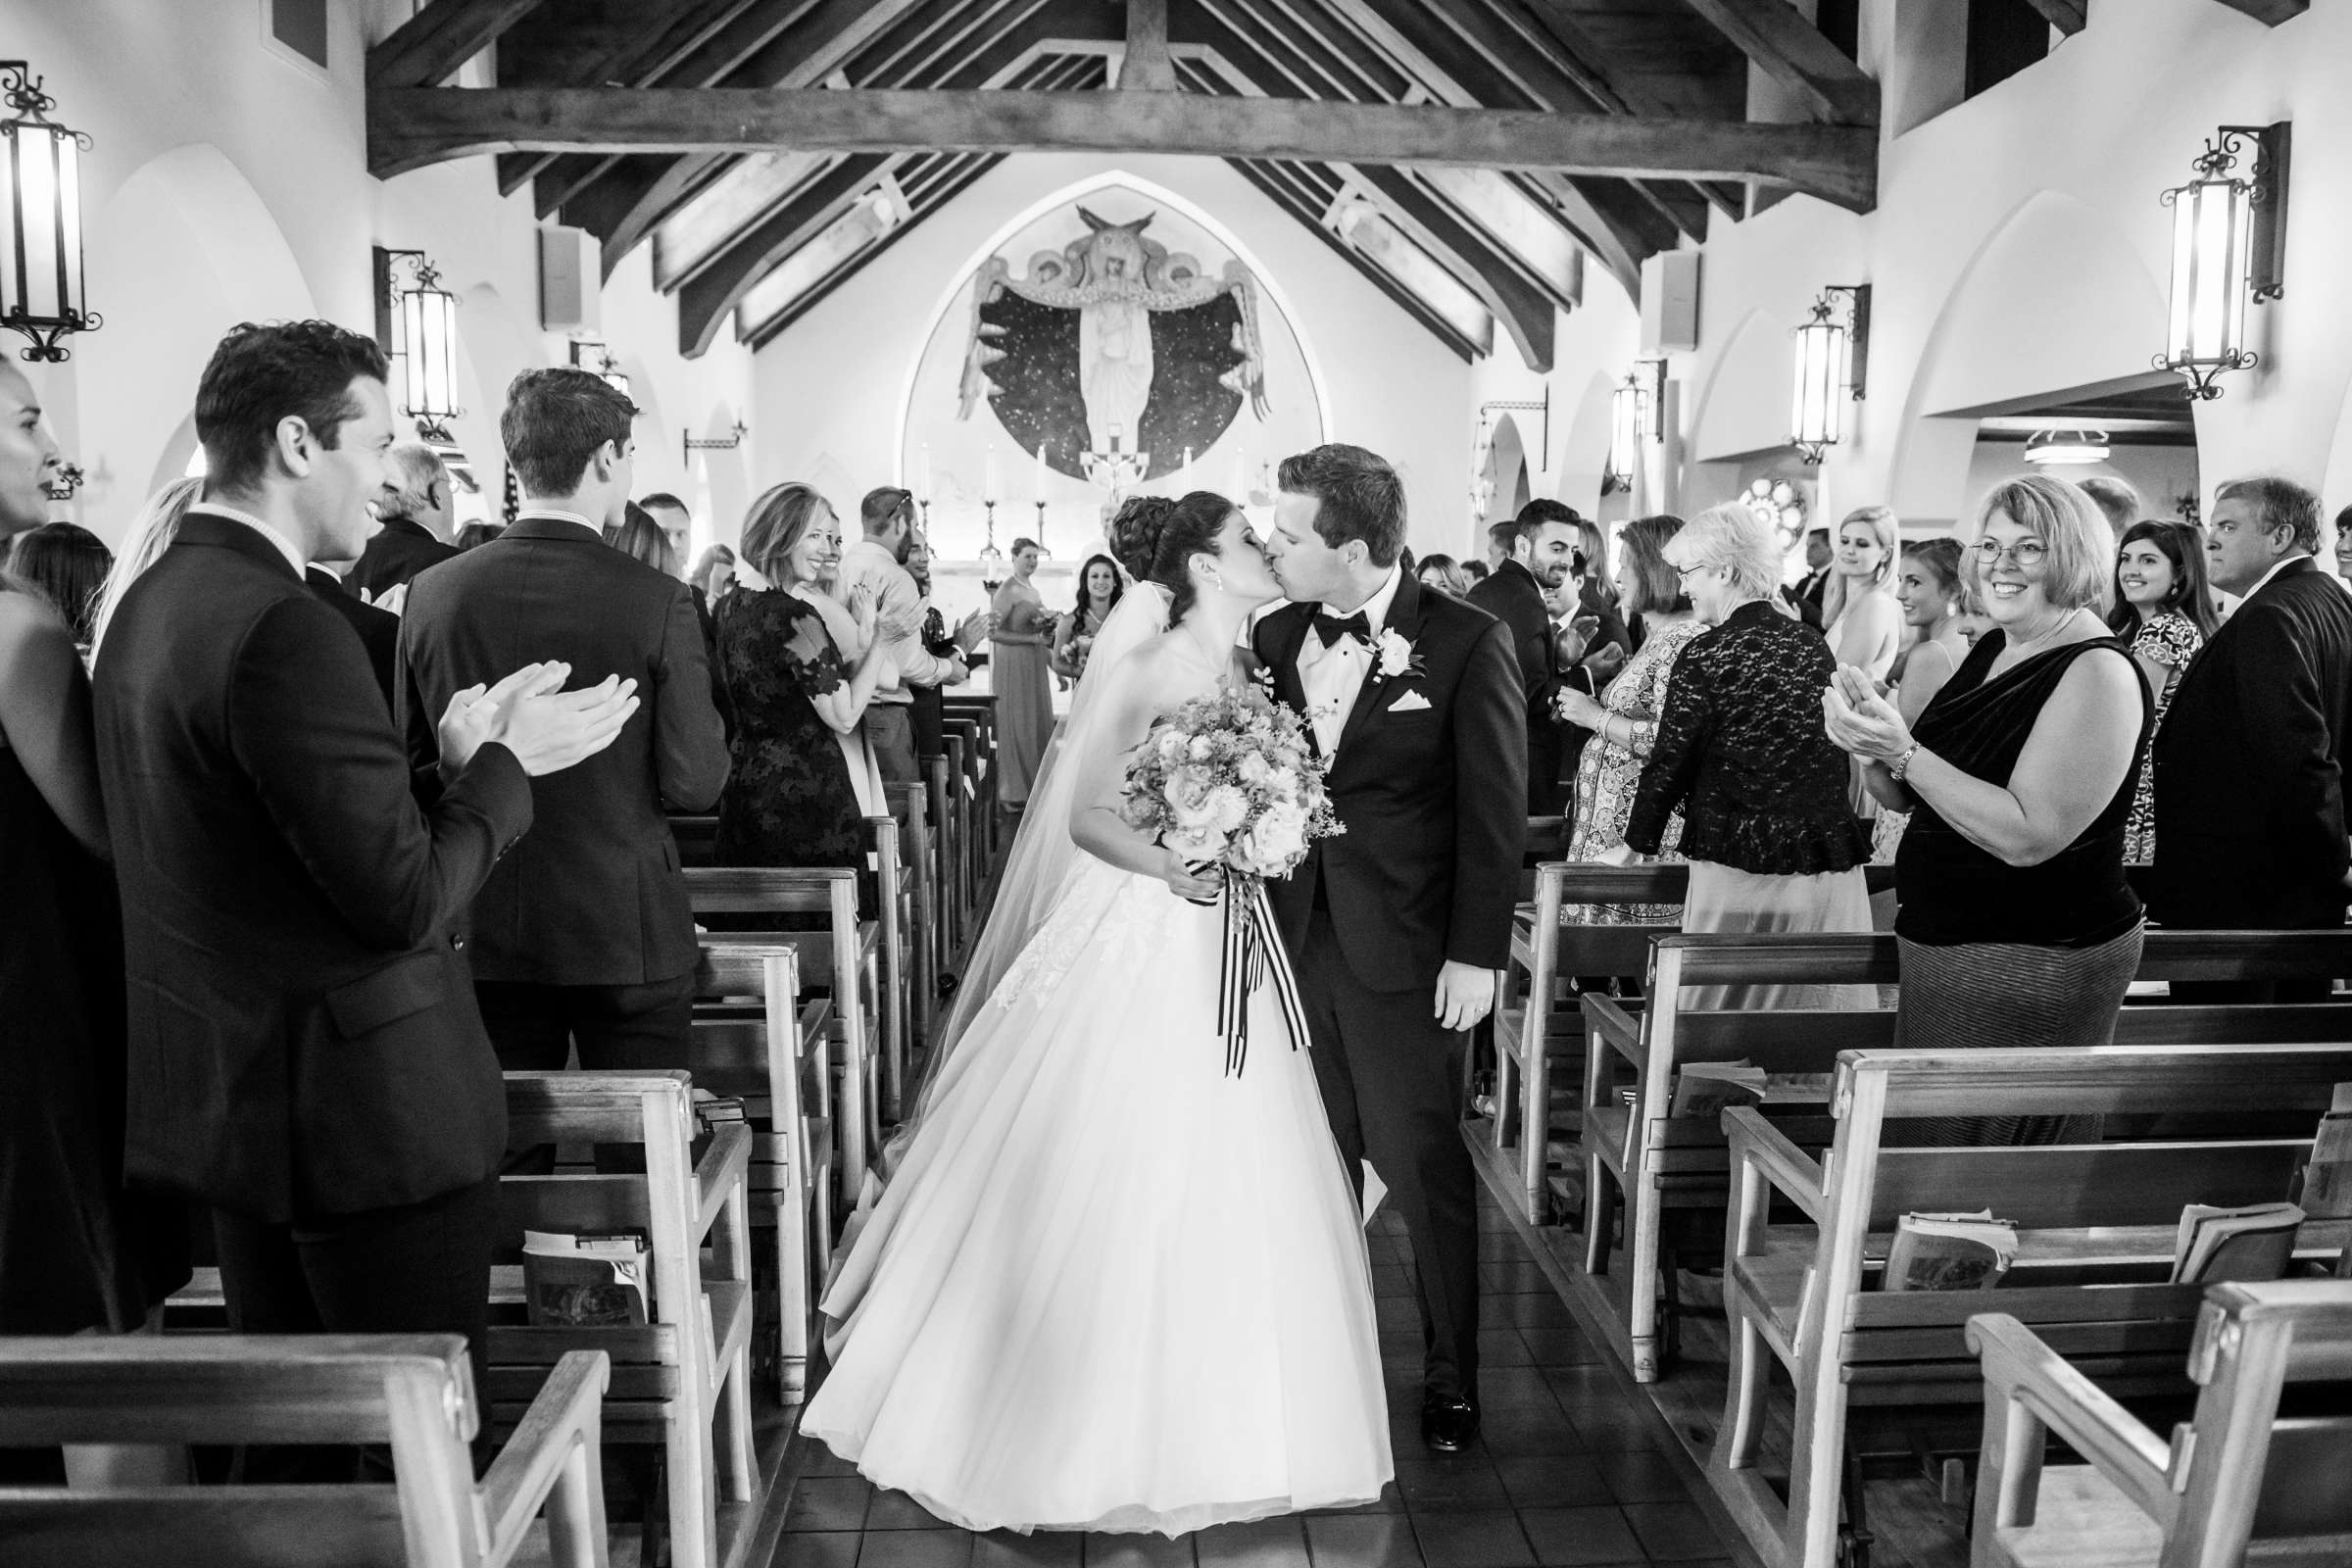 Bahia Hotel Wedding coordinated by I Do Weddings, Meredith and Jack Wedding Photo #42 by True Photography